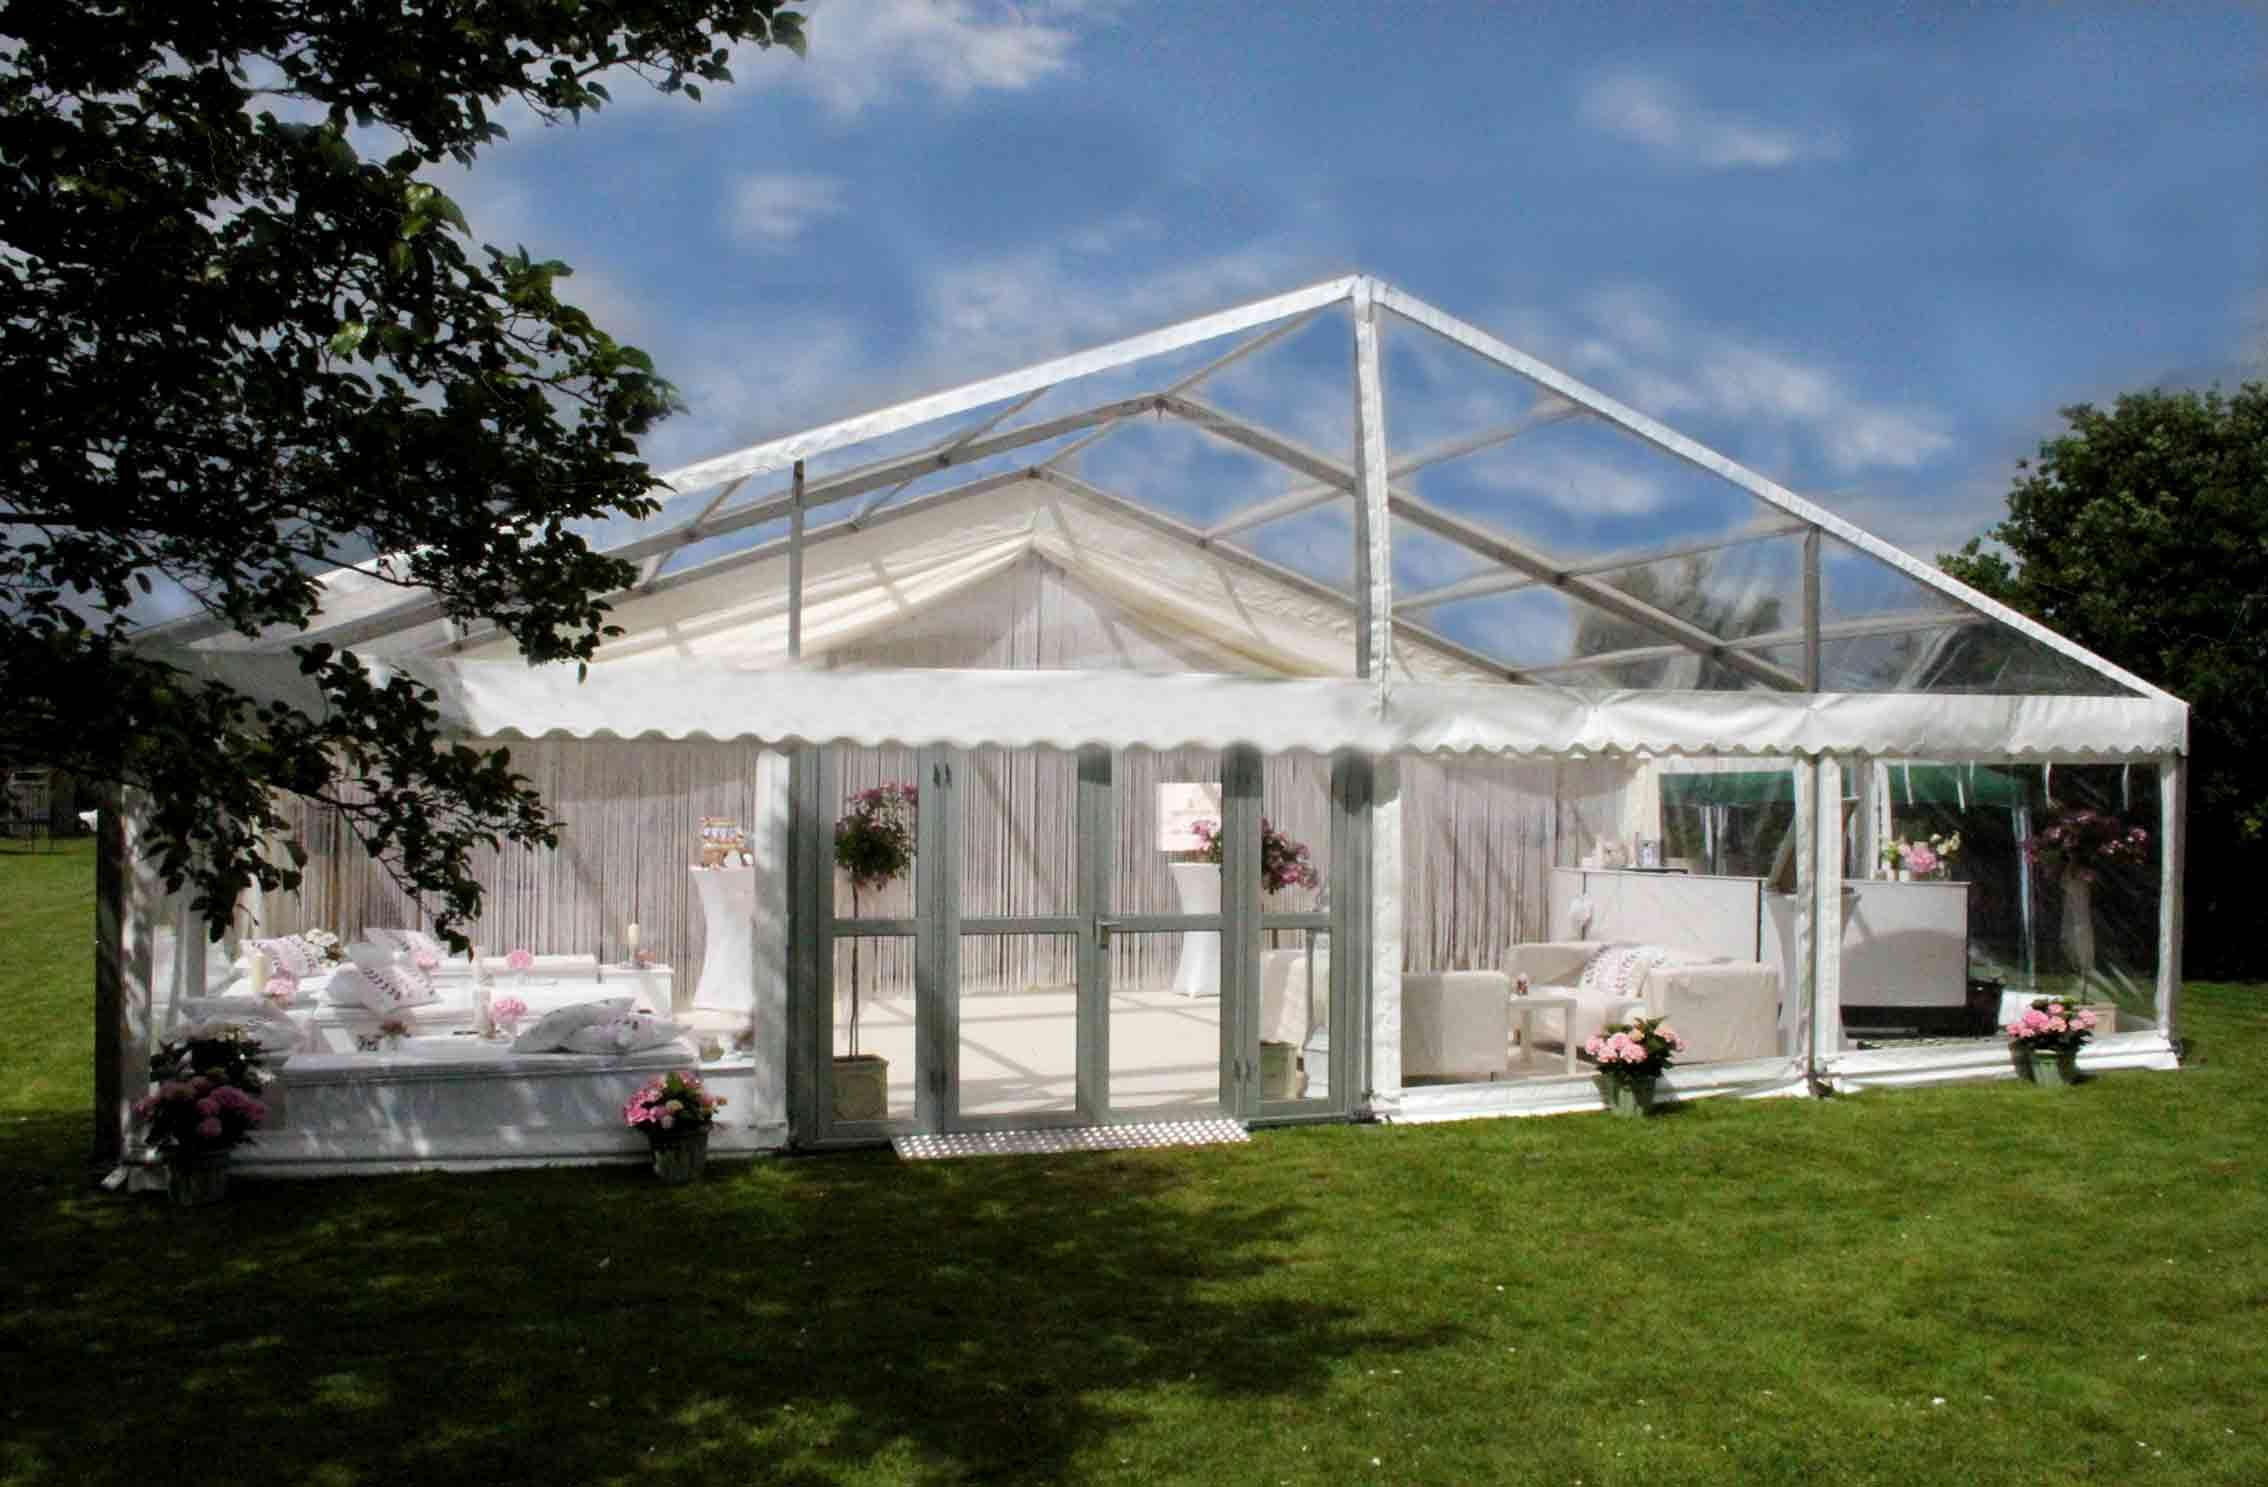 Gallery | Marquee Tent Hire Wedding Marquees Corporate Marquees & Gallery | Marquee Tent Hire Wedding Marquees Corporate Marquees ...